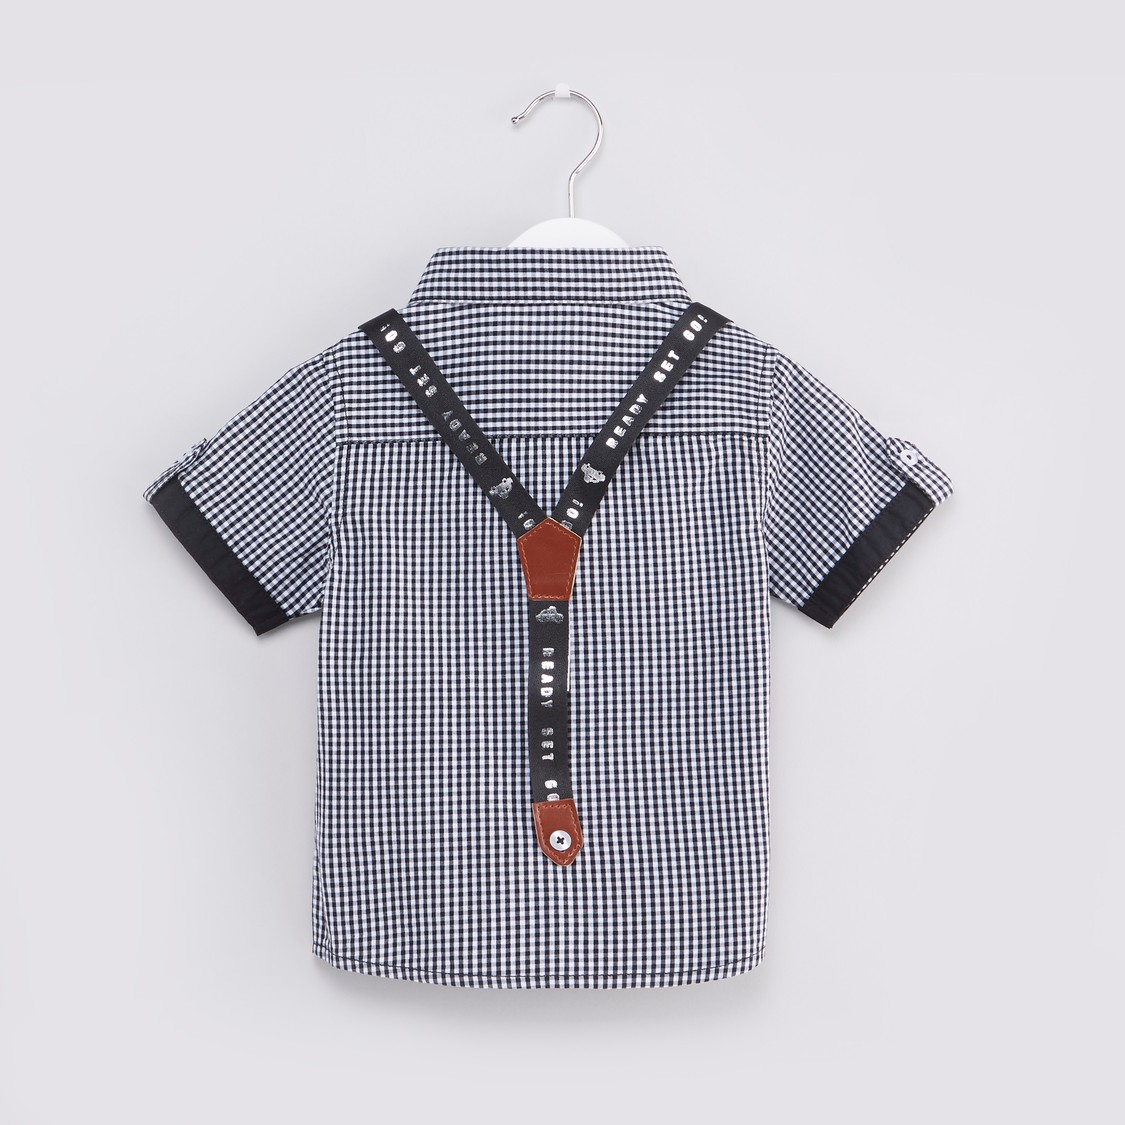 Chequered Shirt with Suspenders